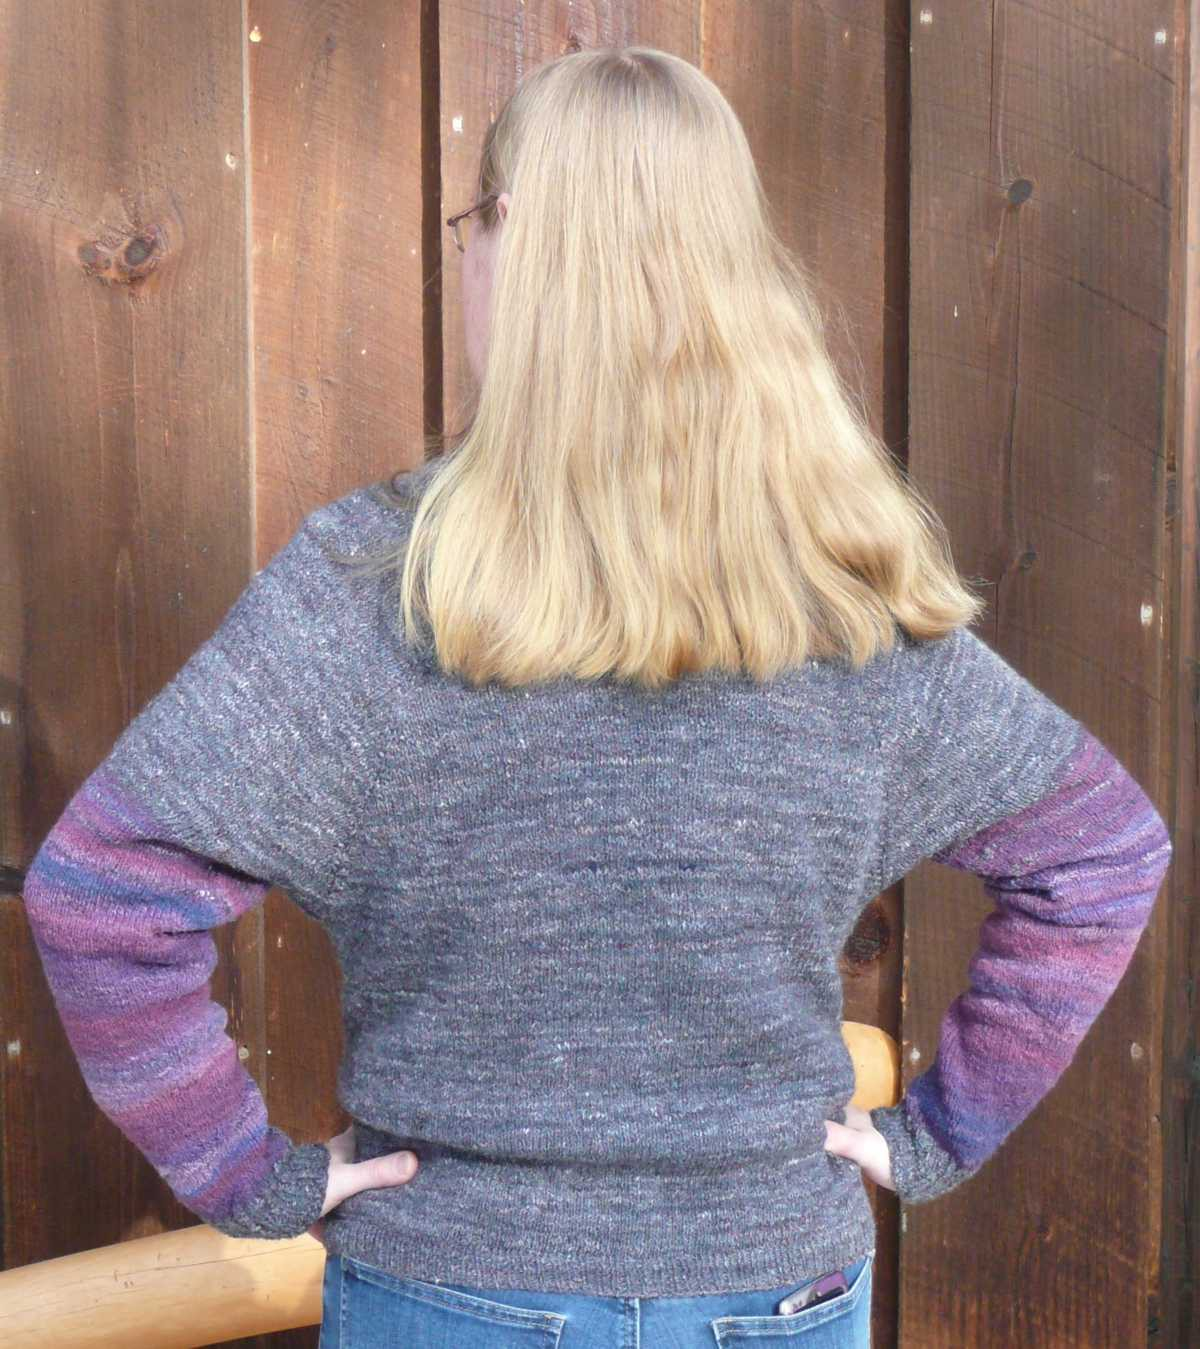 Sweater hand knit from yarn hand spun and plied on drop spindles all made by Cynthia D. Haney.